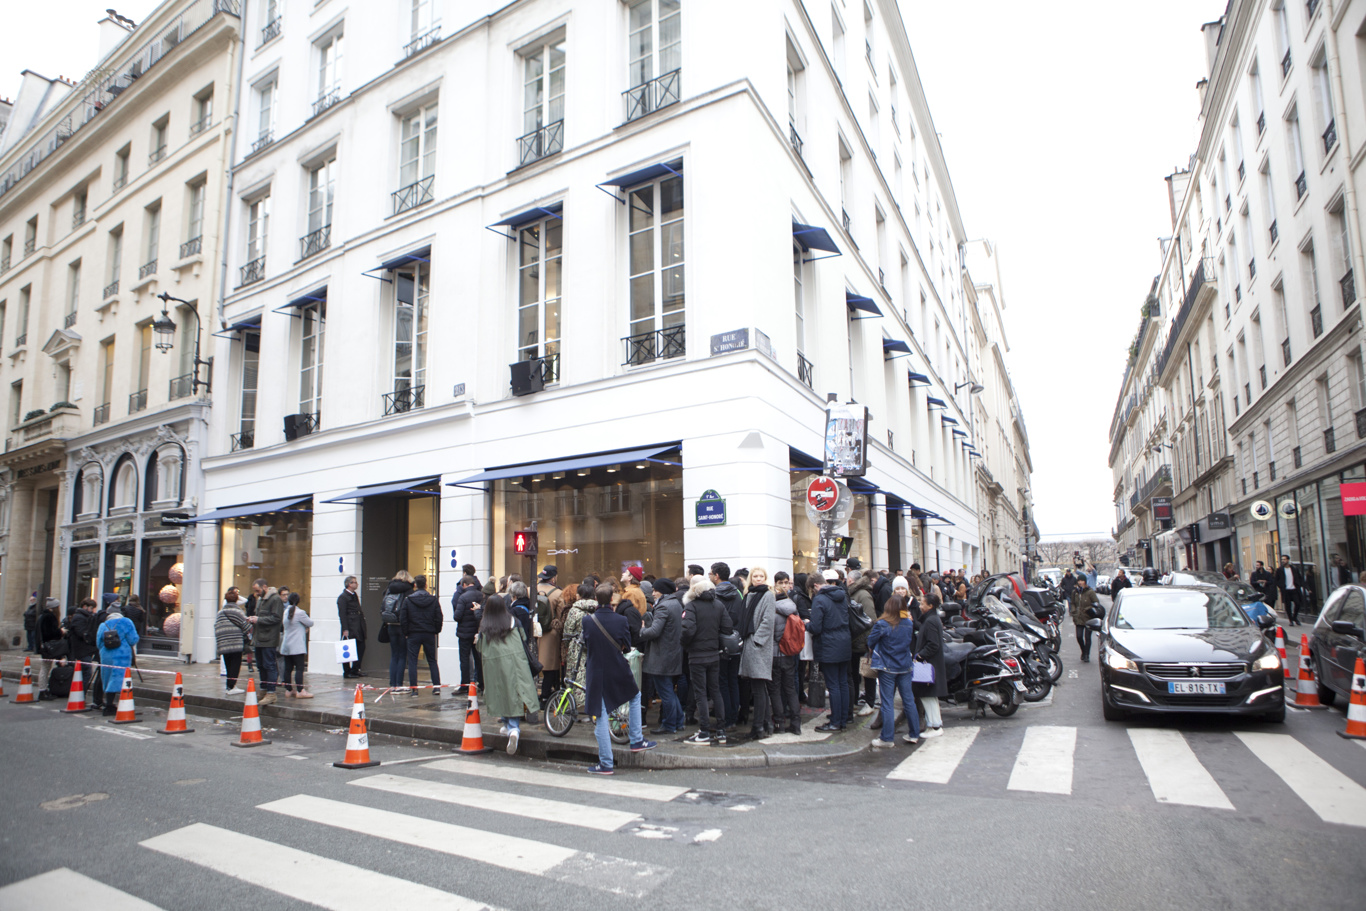 The queue at Colette Wednesday.